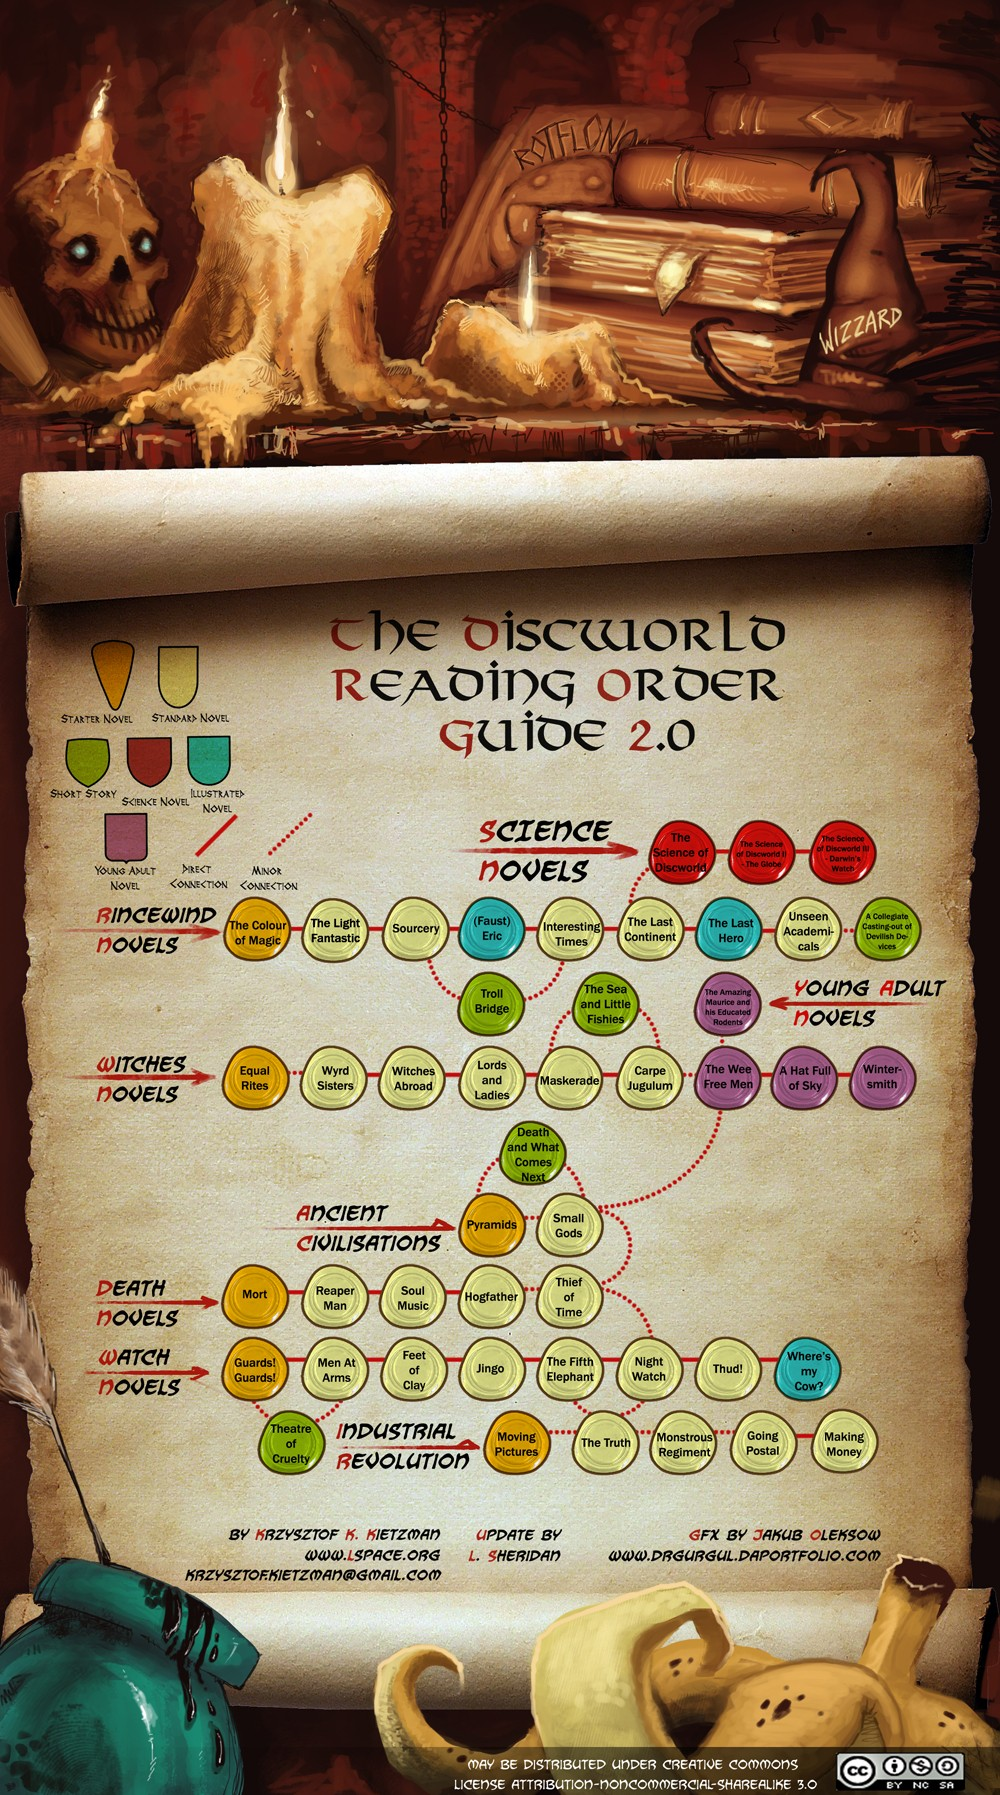 Discworld Reading Order The-discworld-reading-order-guide-20